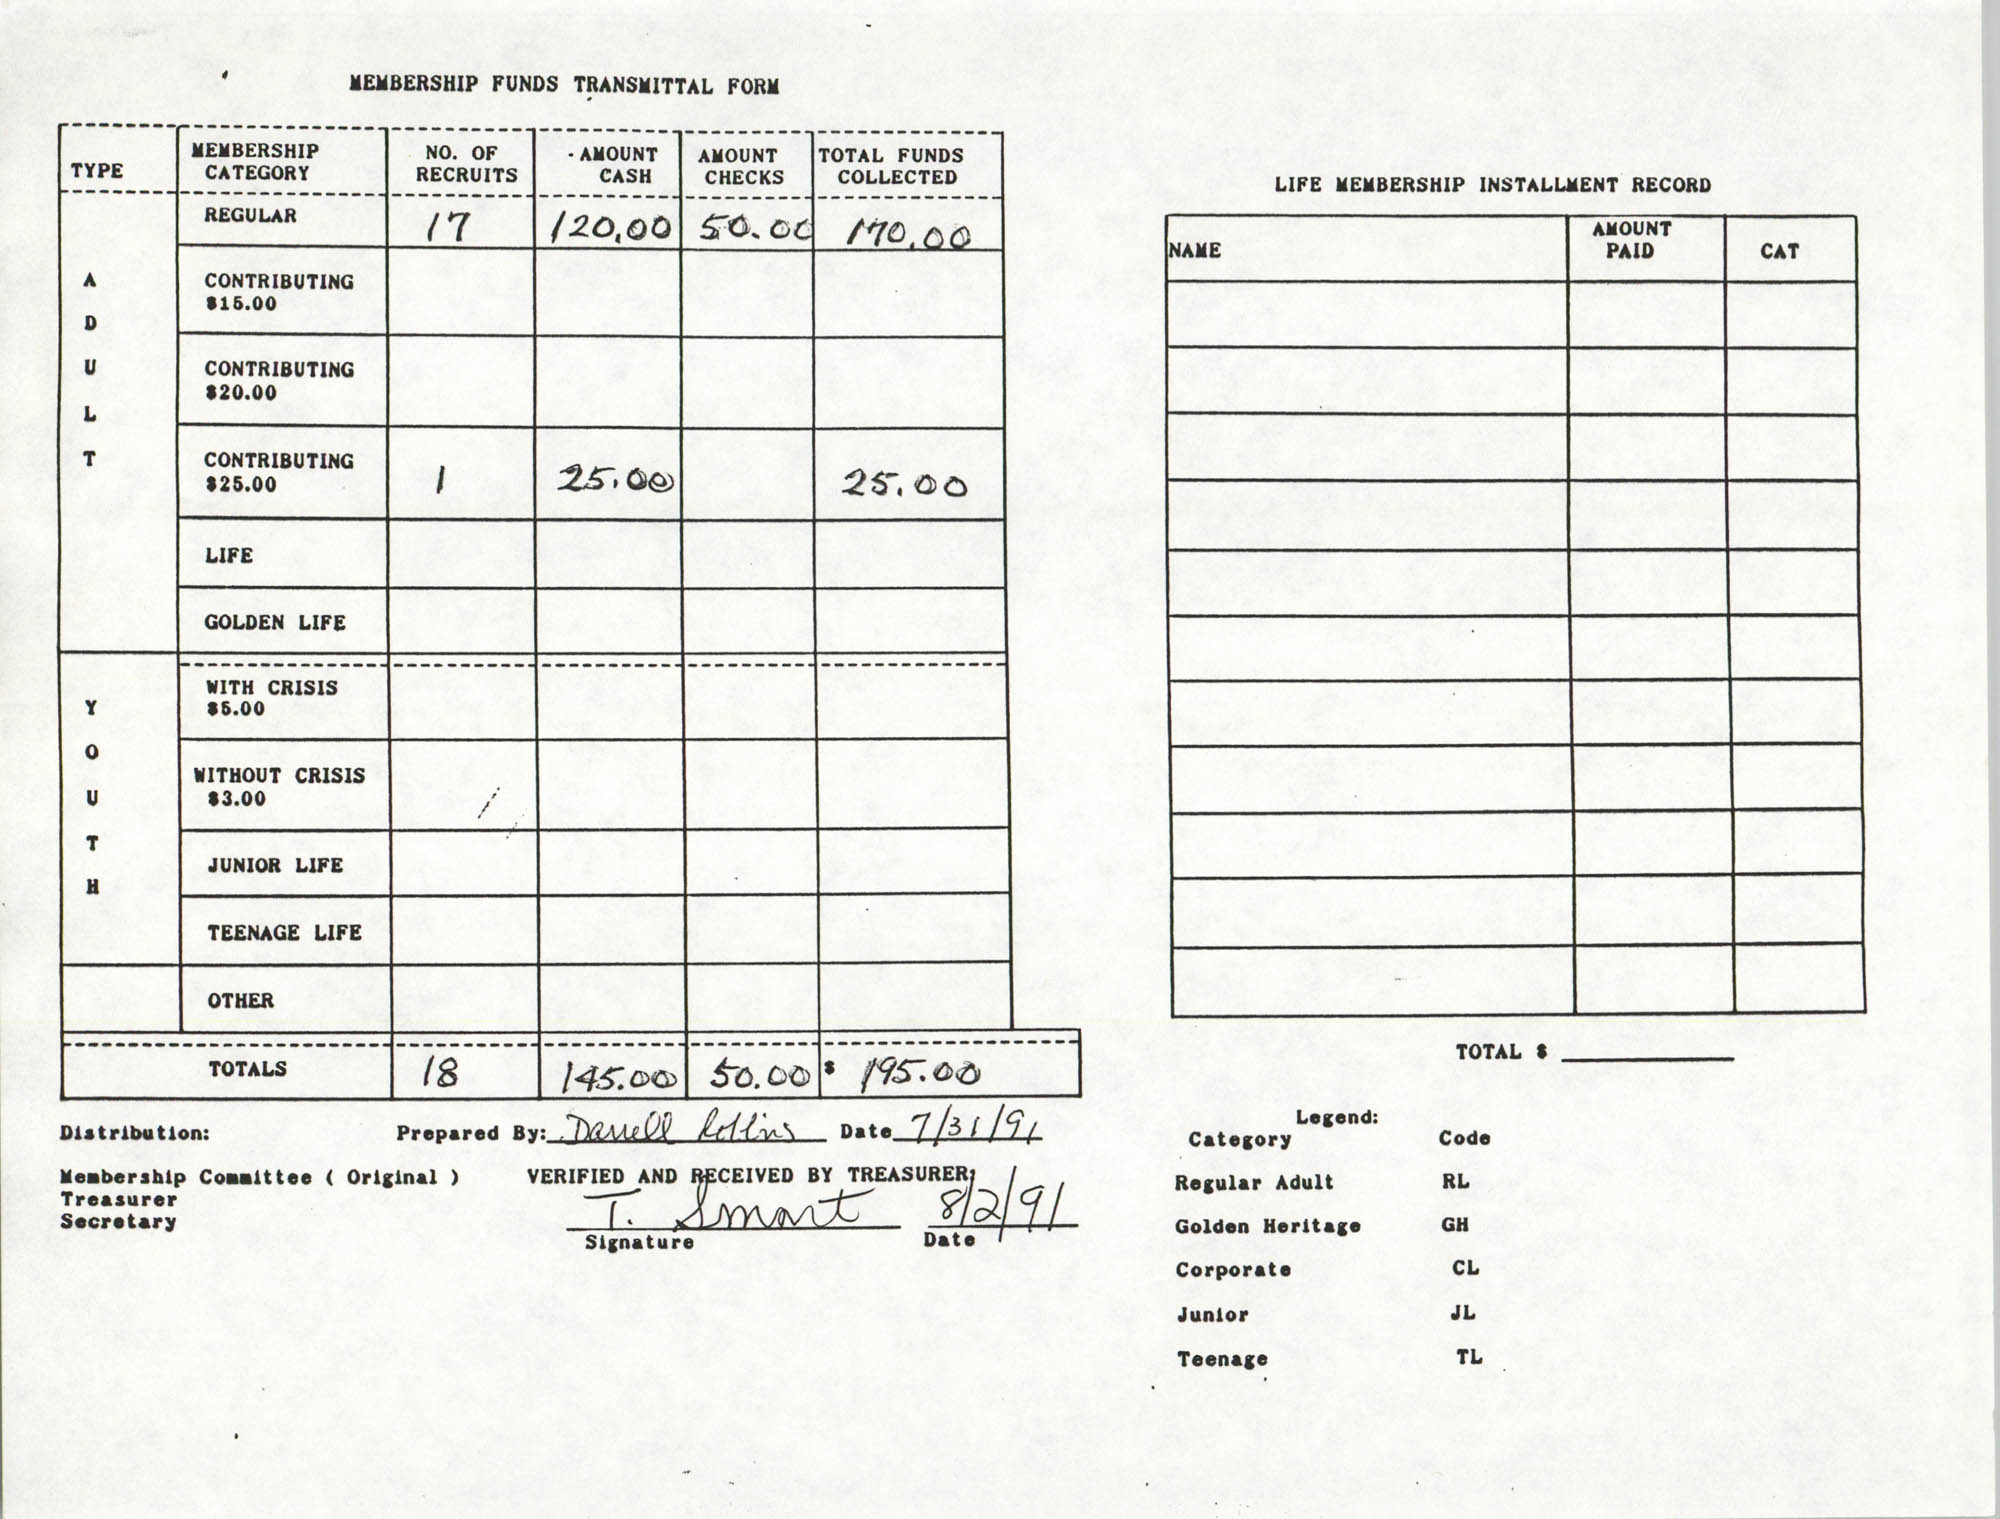 Charleston Branch of the NAACP Funds Transmittal Forms, July 1991, Page 11